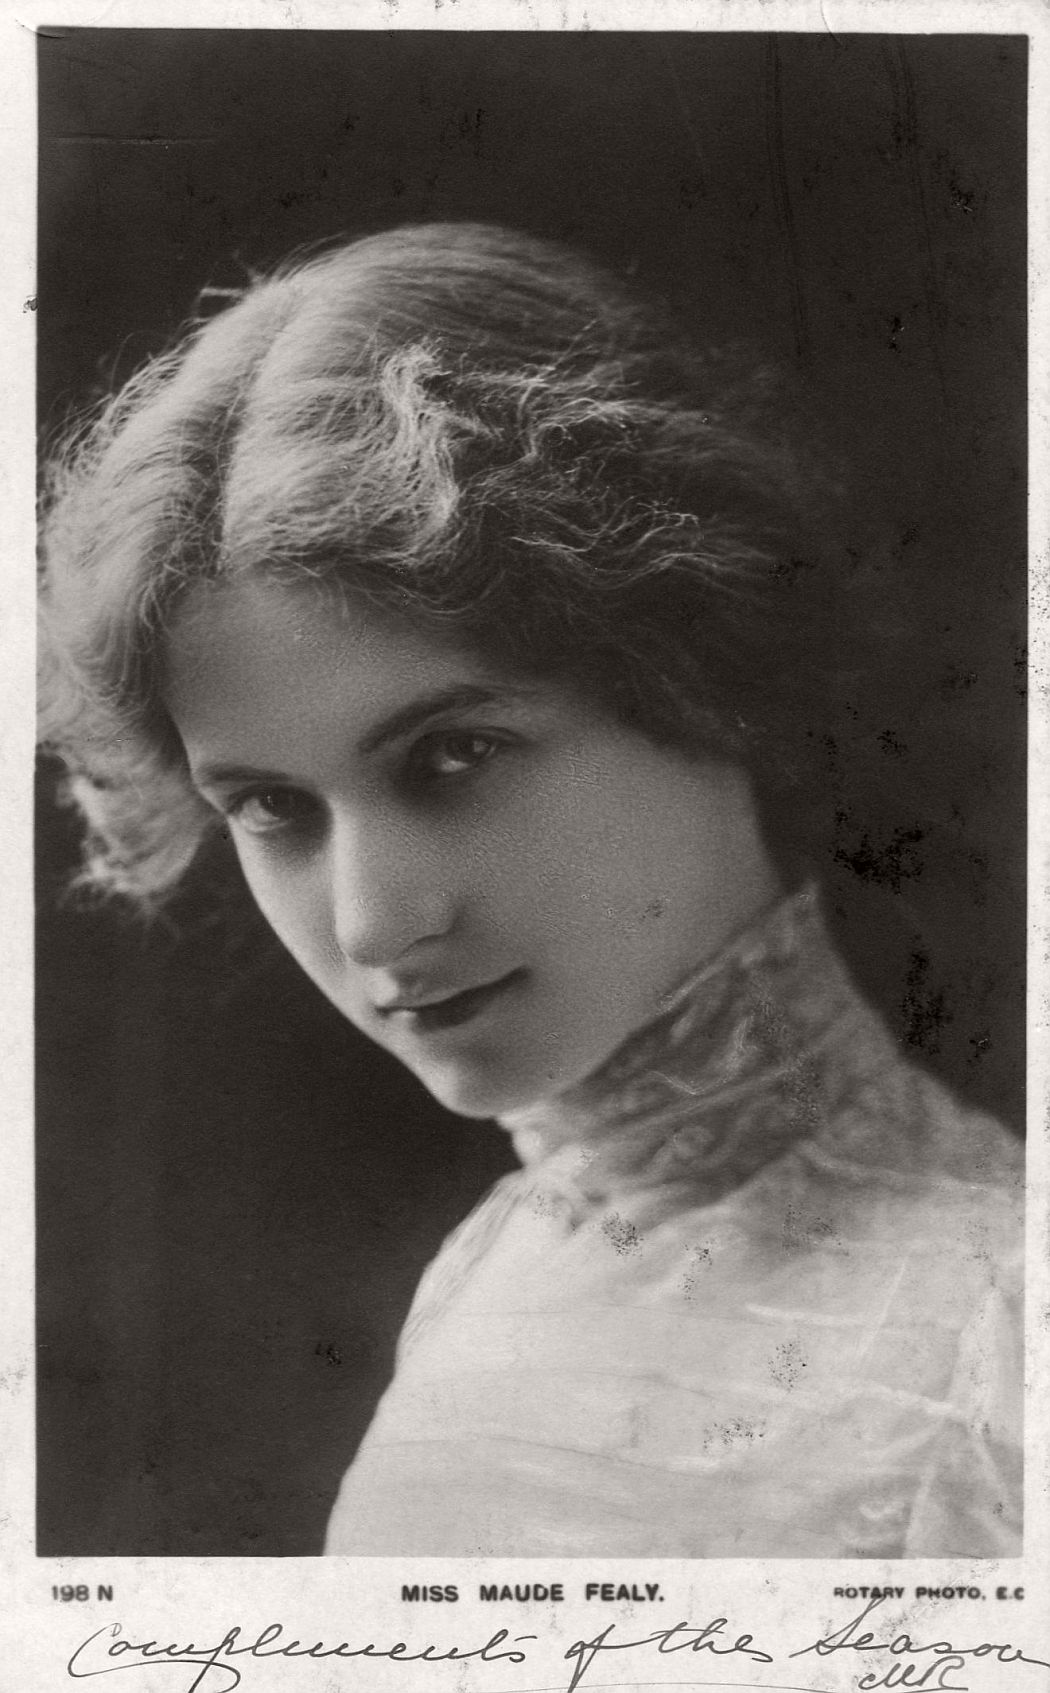 vintage-postcard-of-actress-miss-maude-fealy-1900s-early-xx-century-13